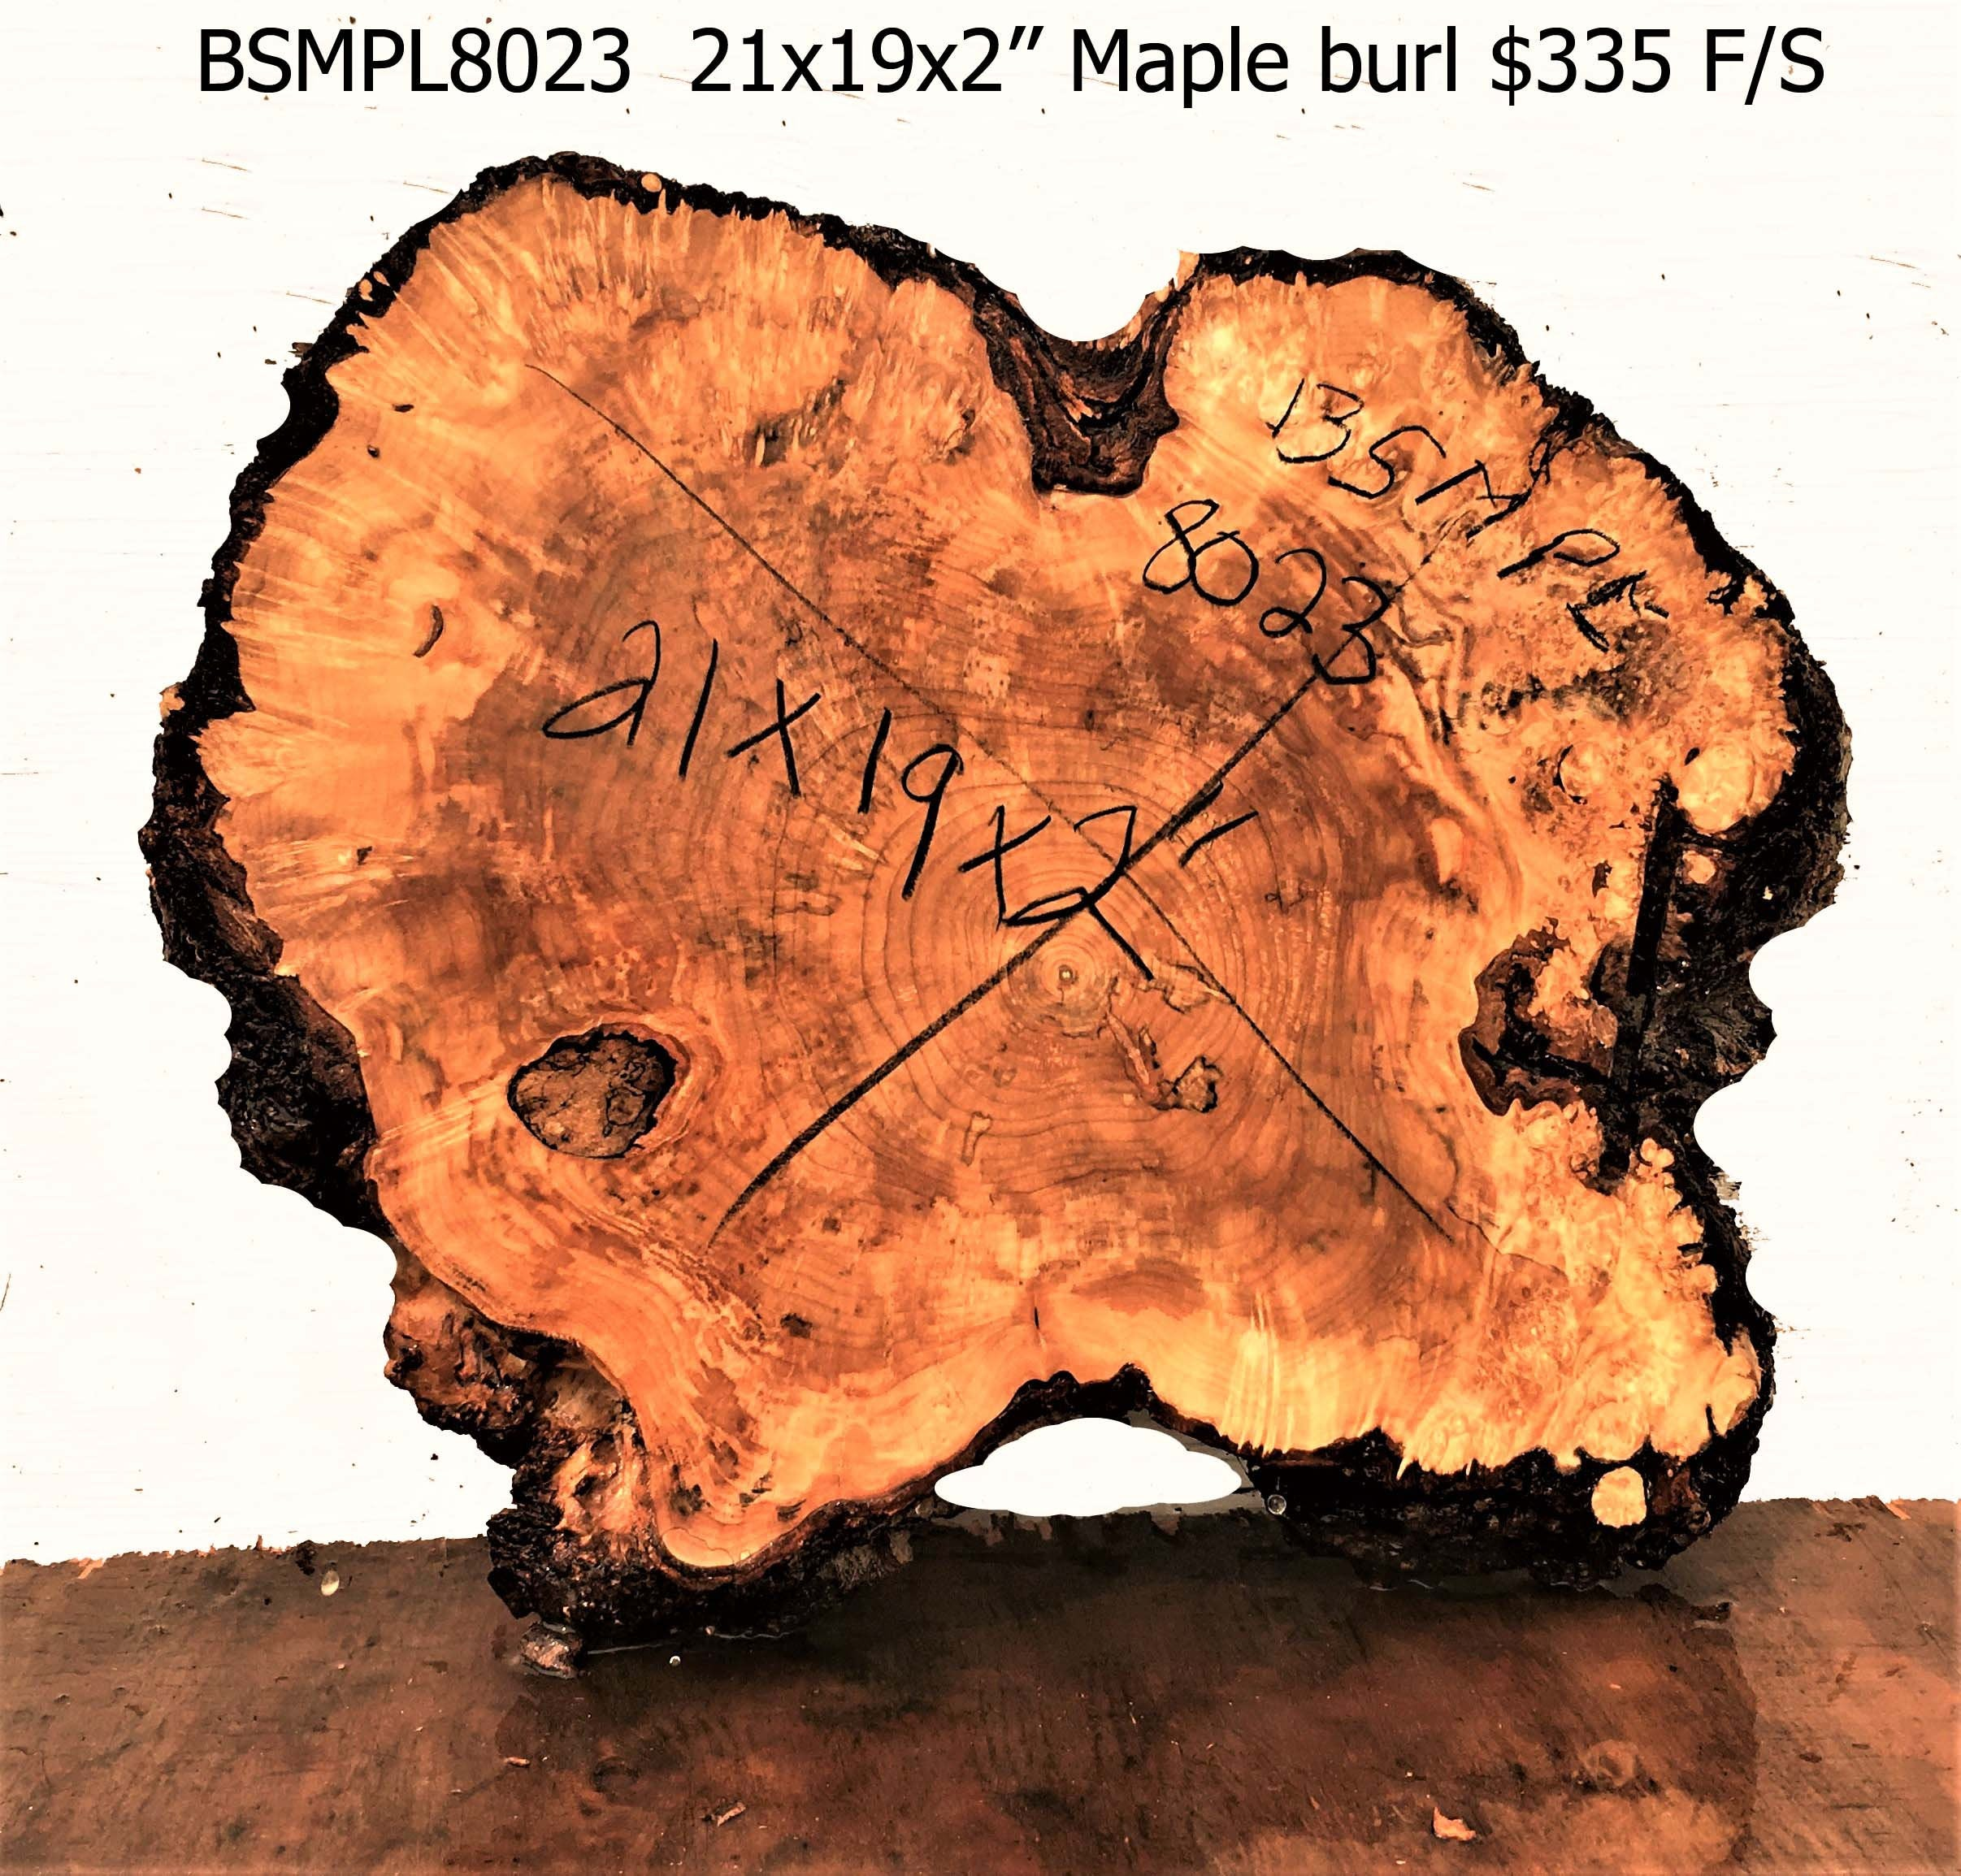 Maple burl slab | live edge table top | craft woods | bsmpl8023